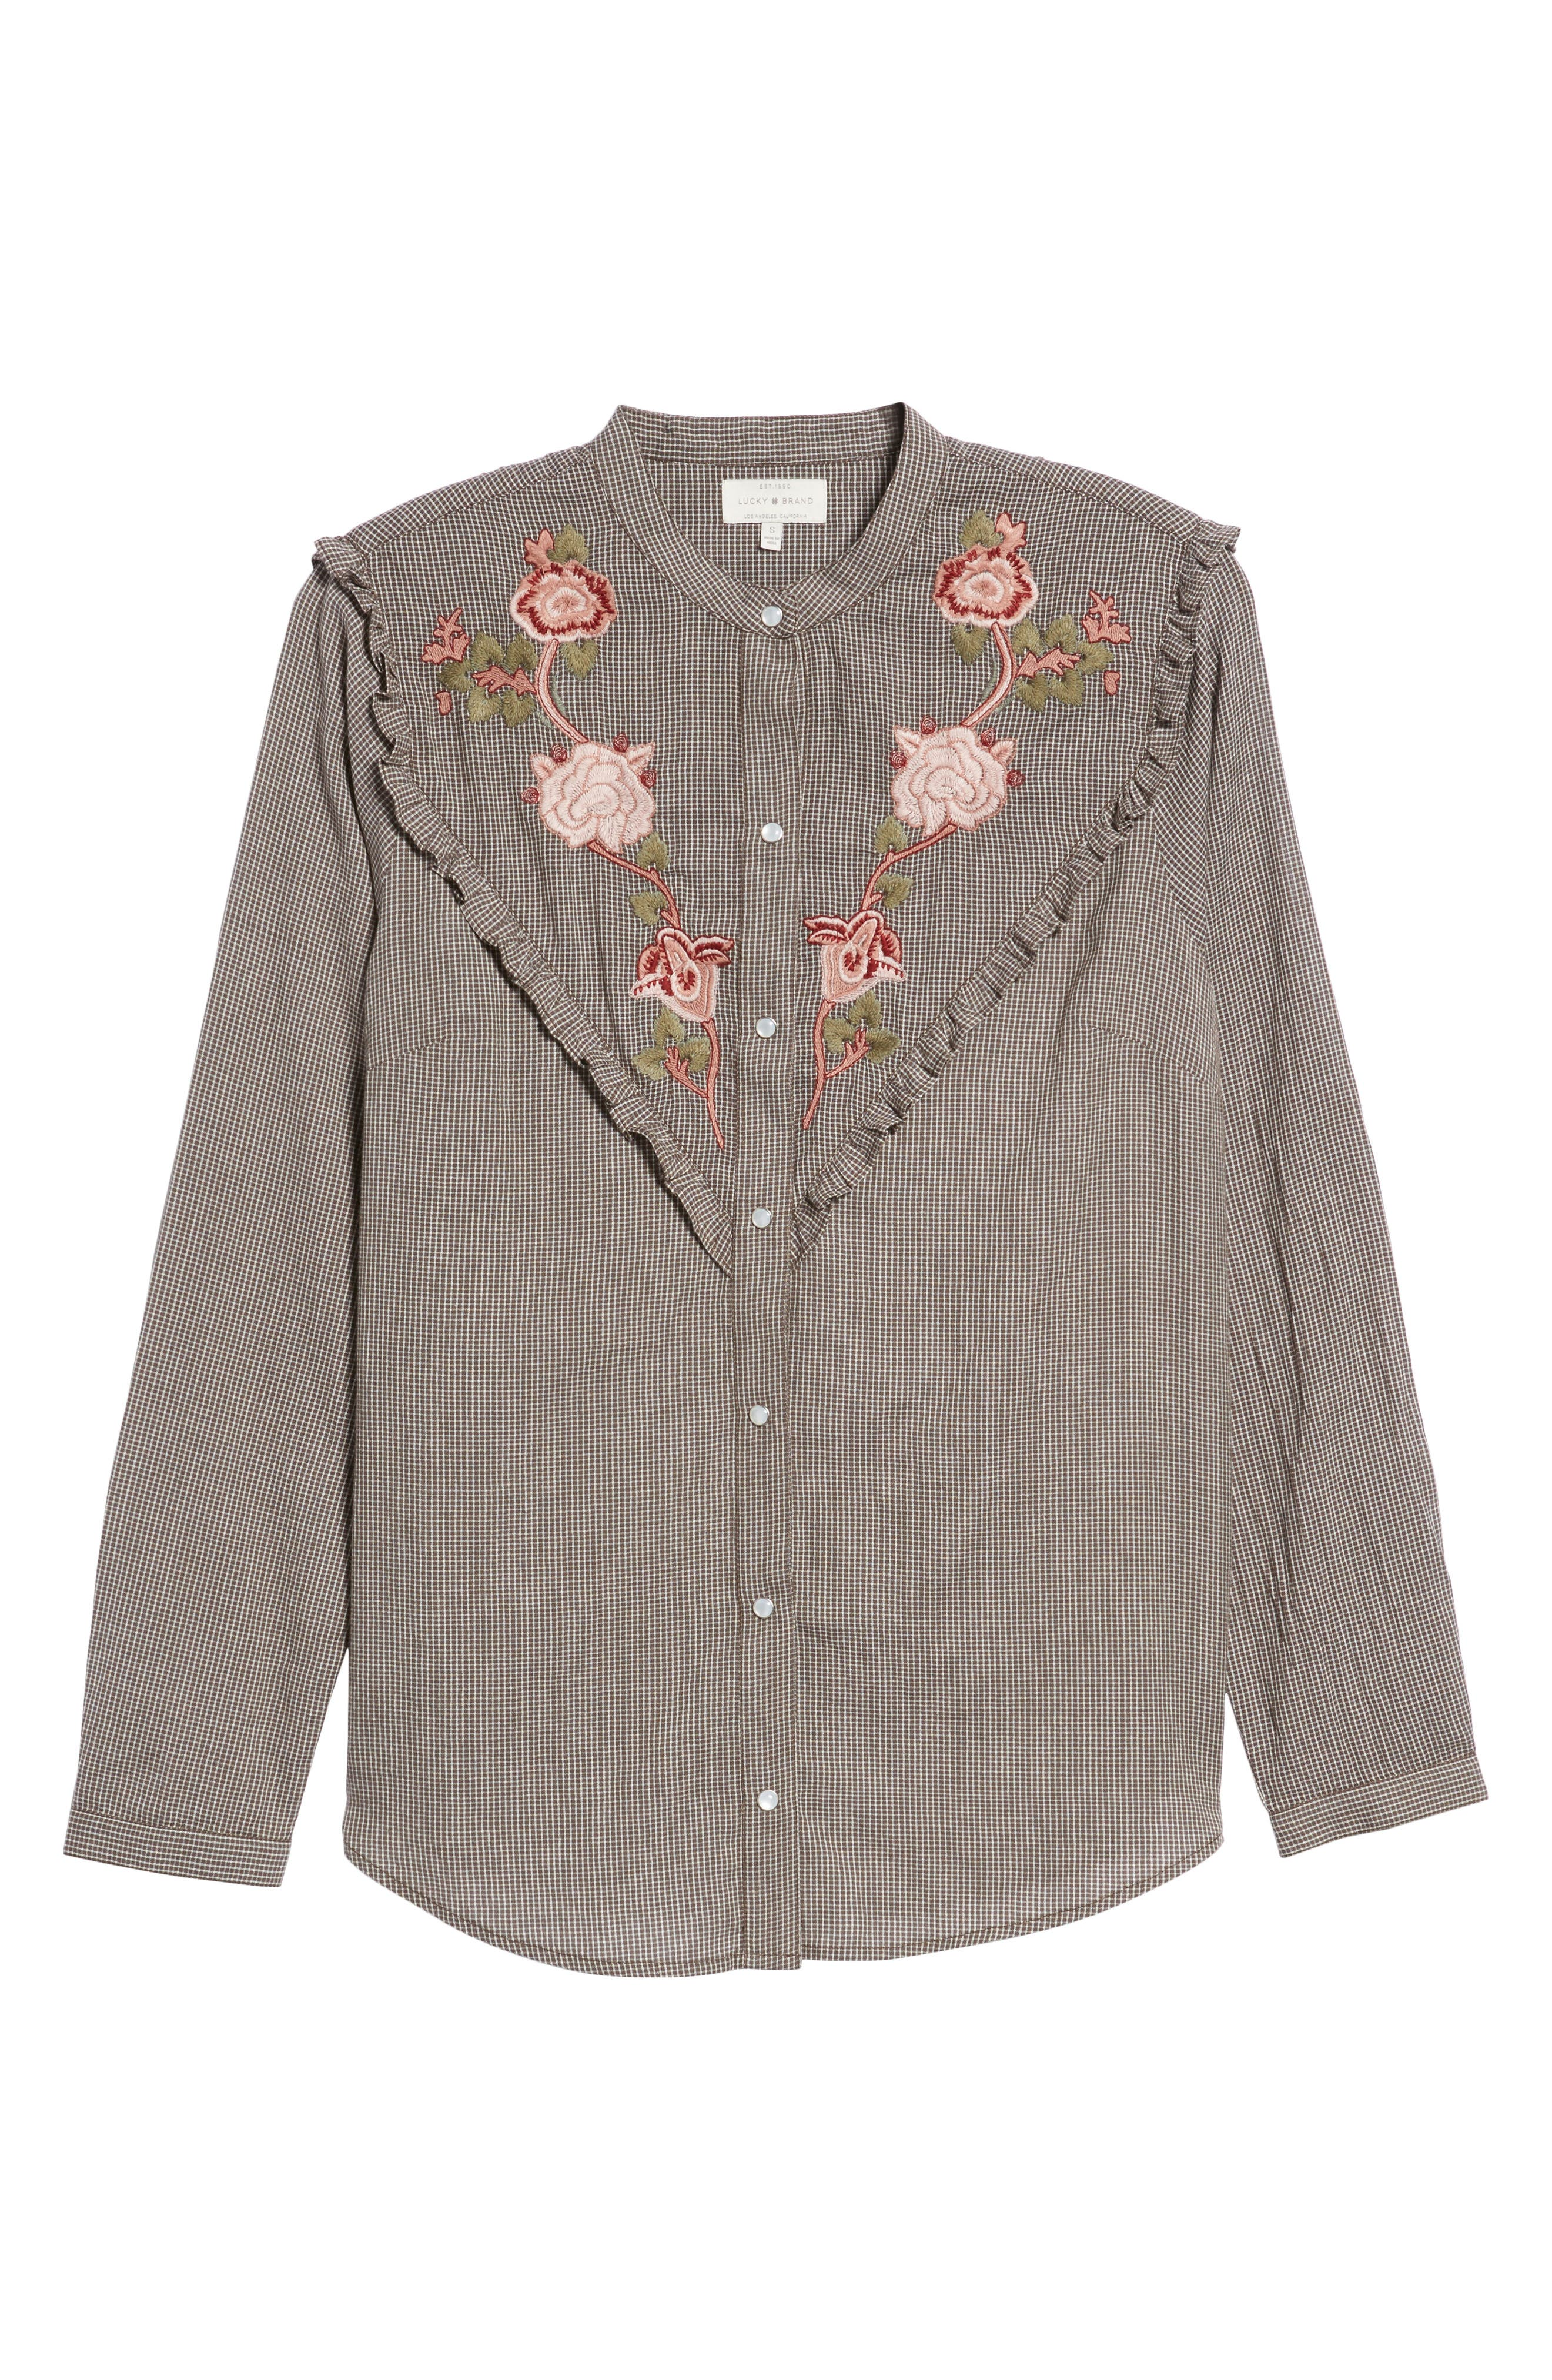 Embroidered Western Shirt,                             Alternate thumbnail 6, color,                             Grey Multi